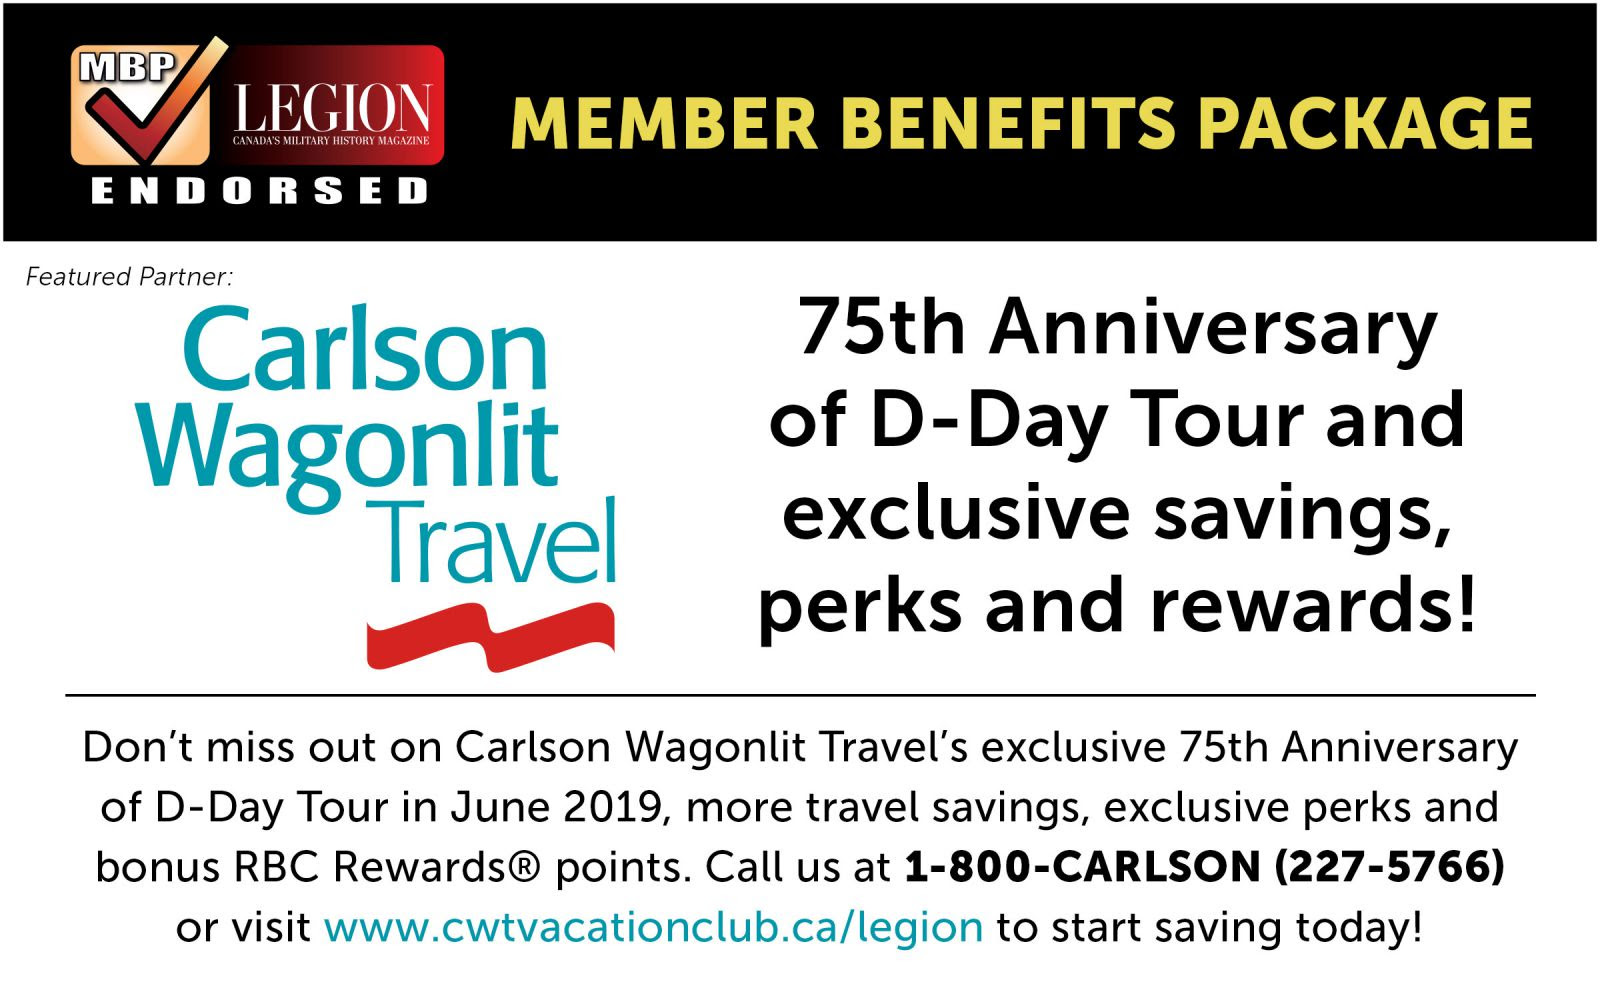 Carlson Wagonlit Travel